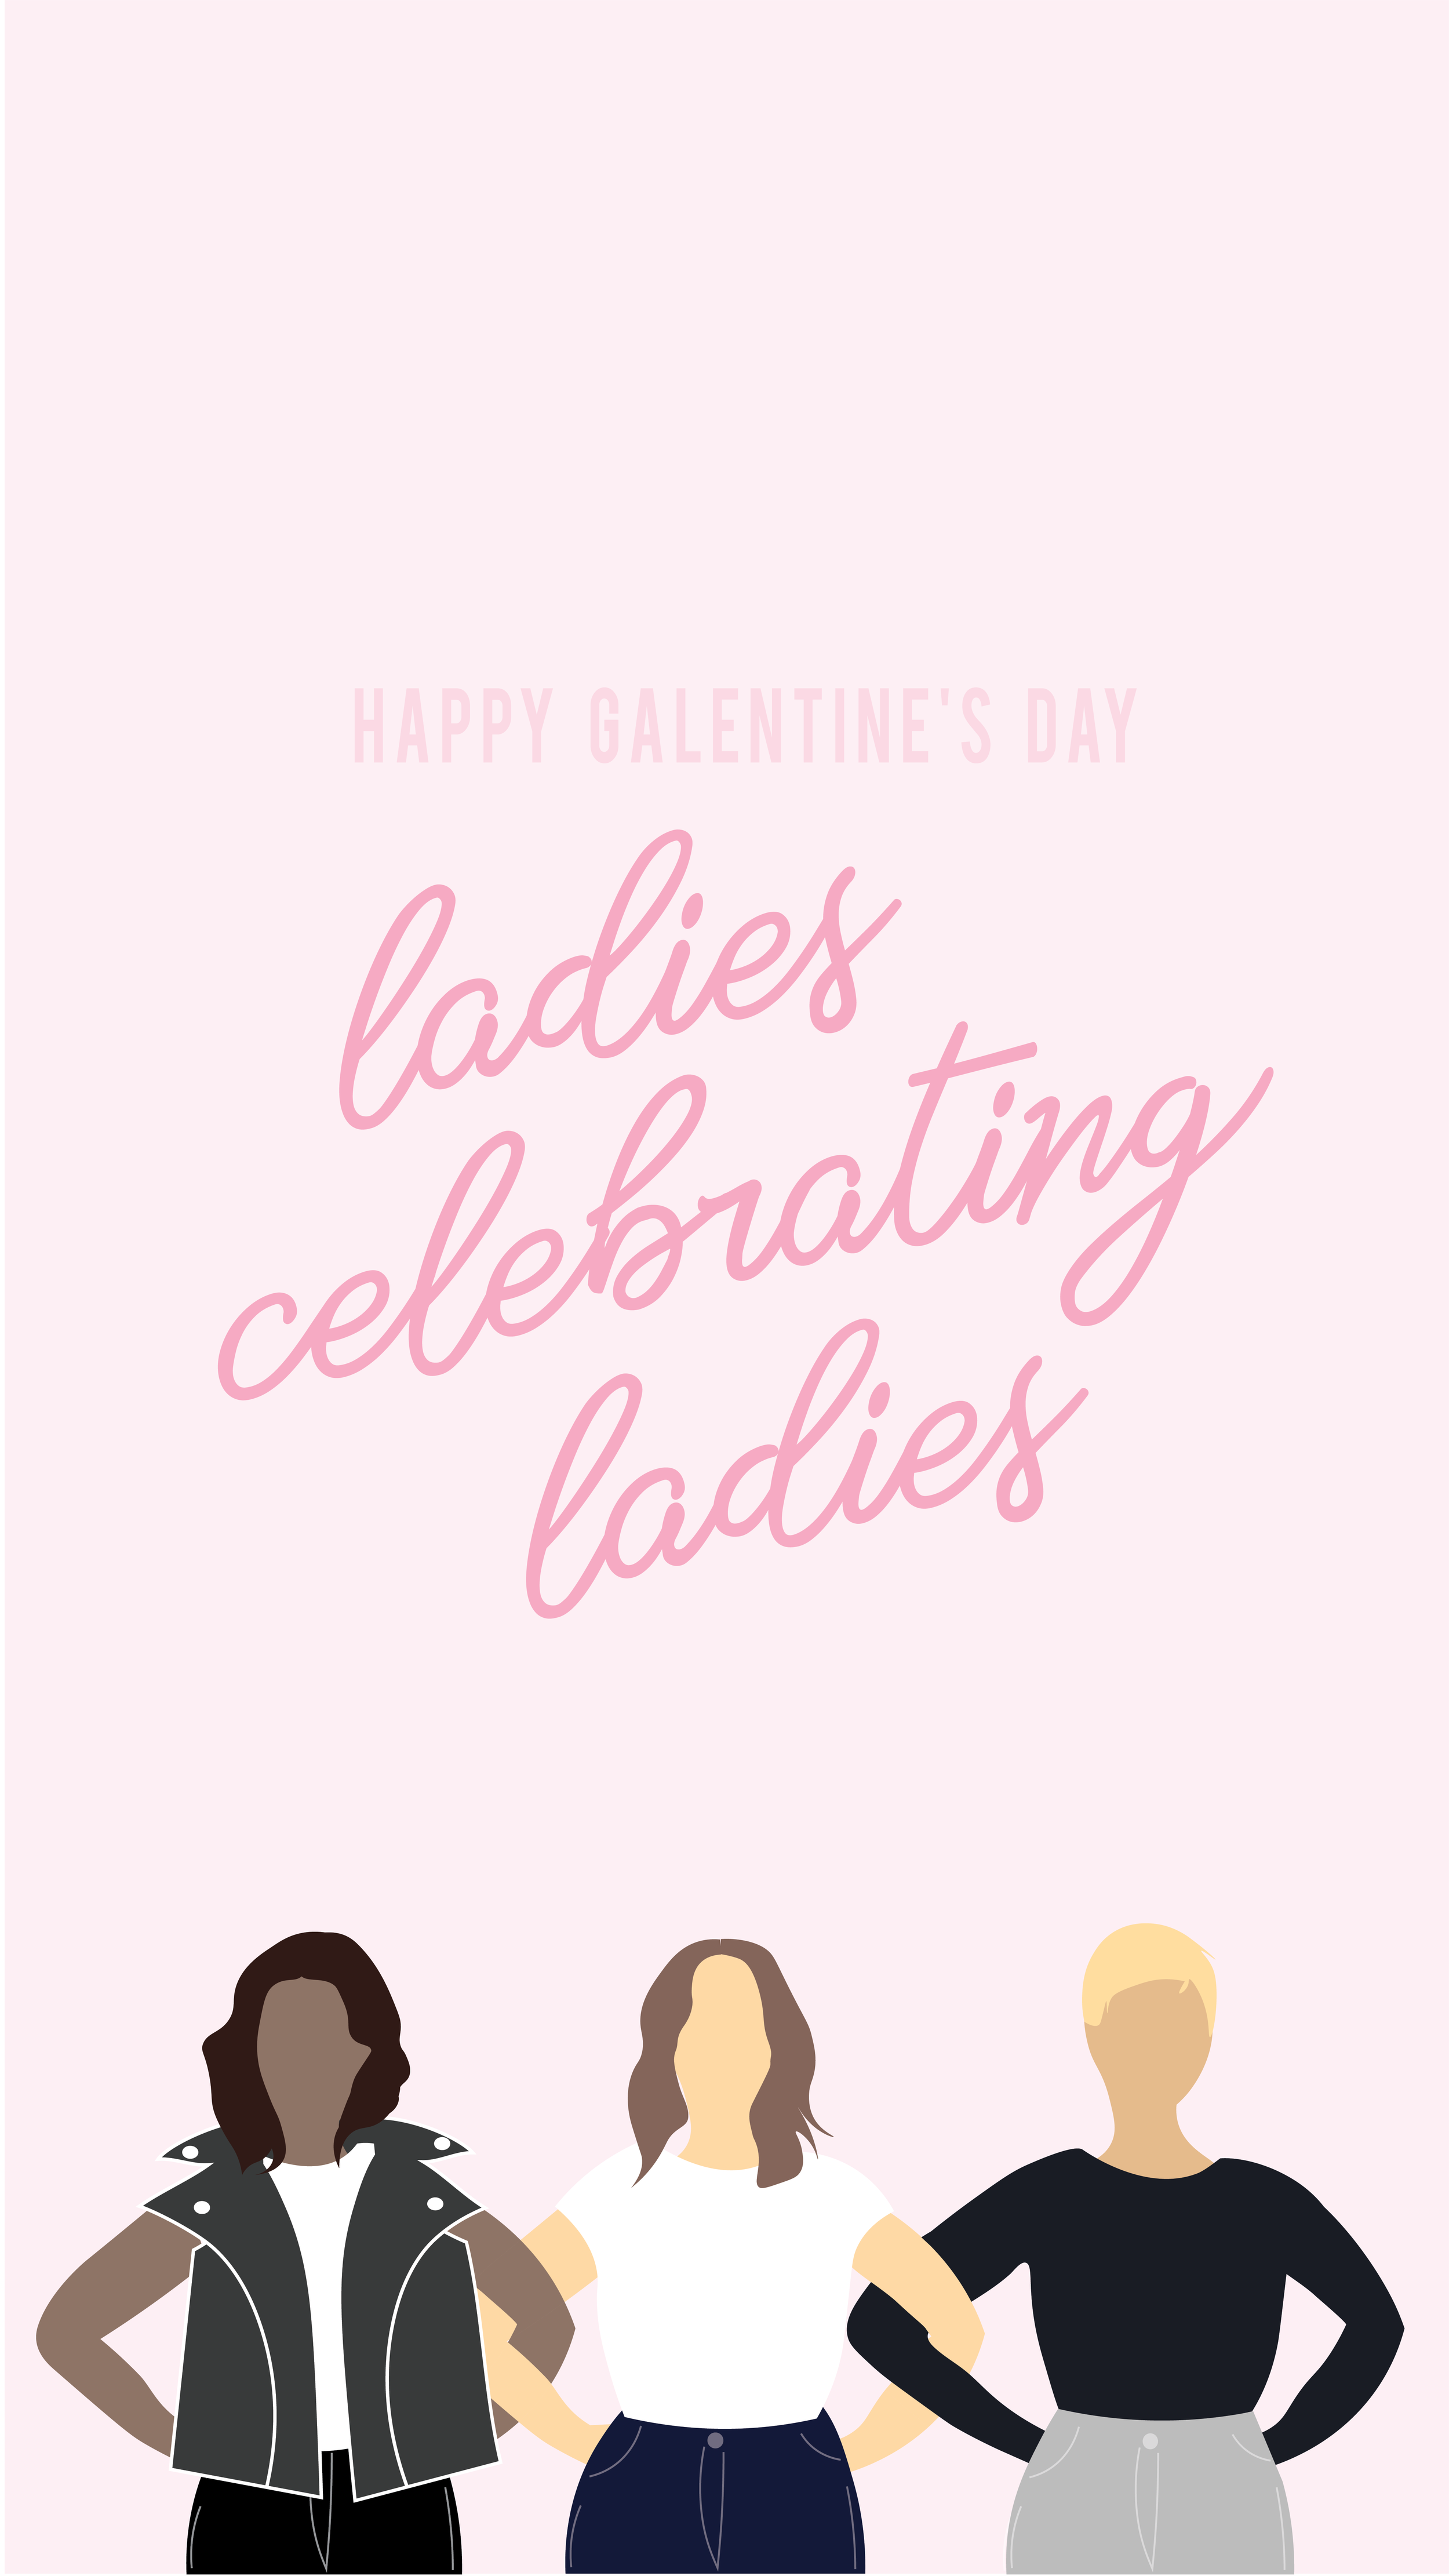 GALENTINES-03.png